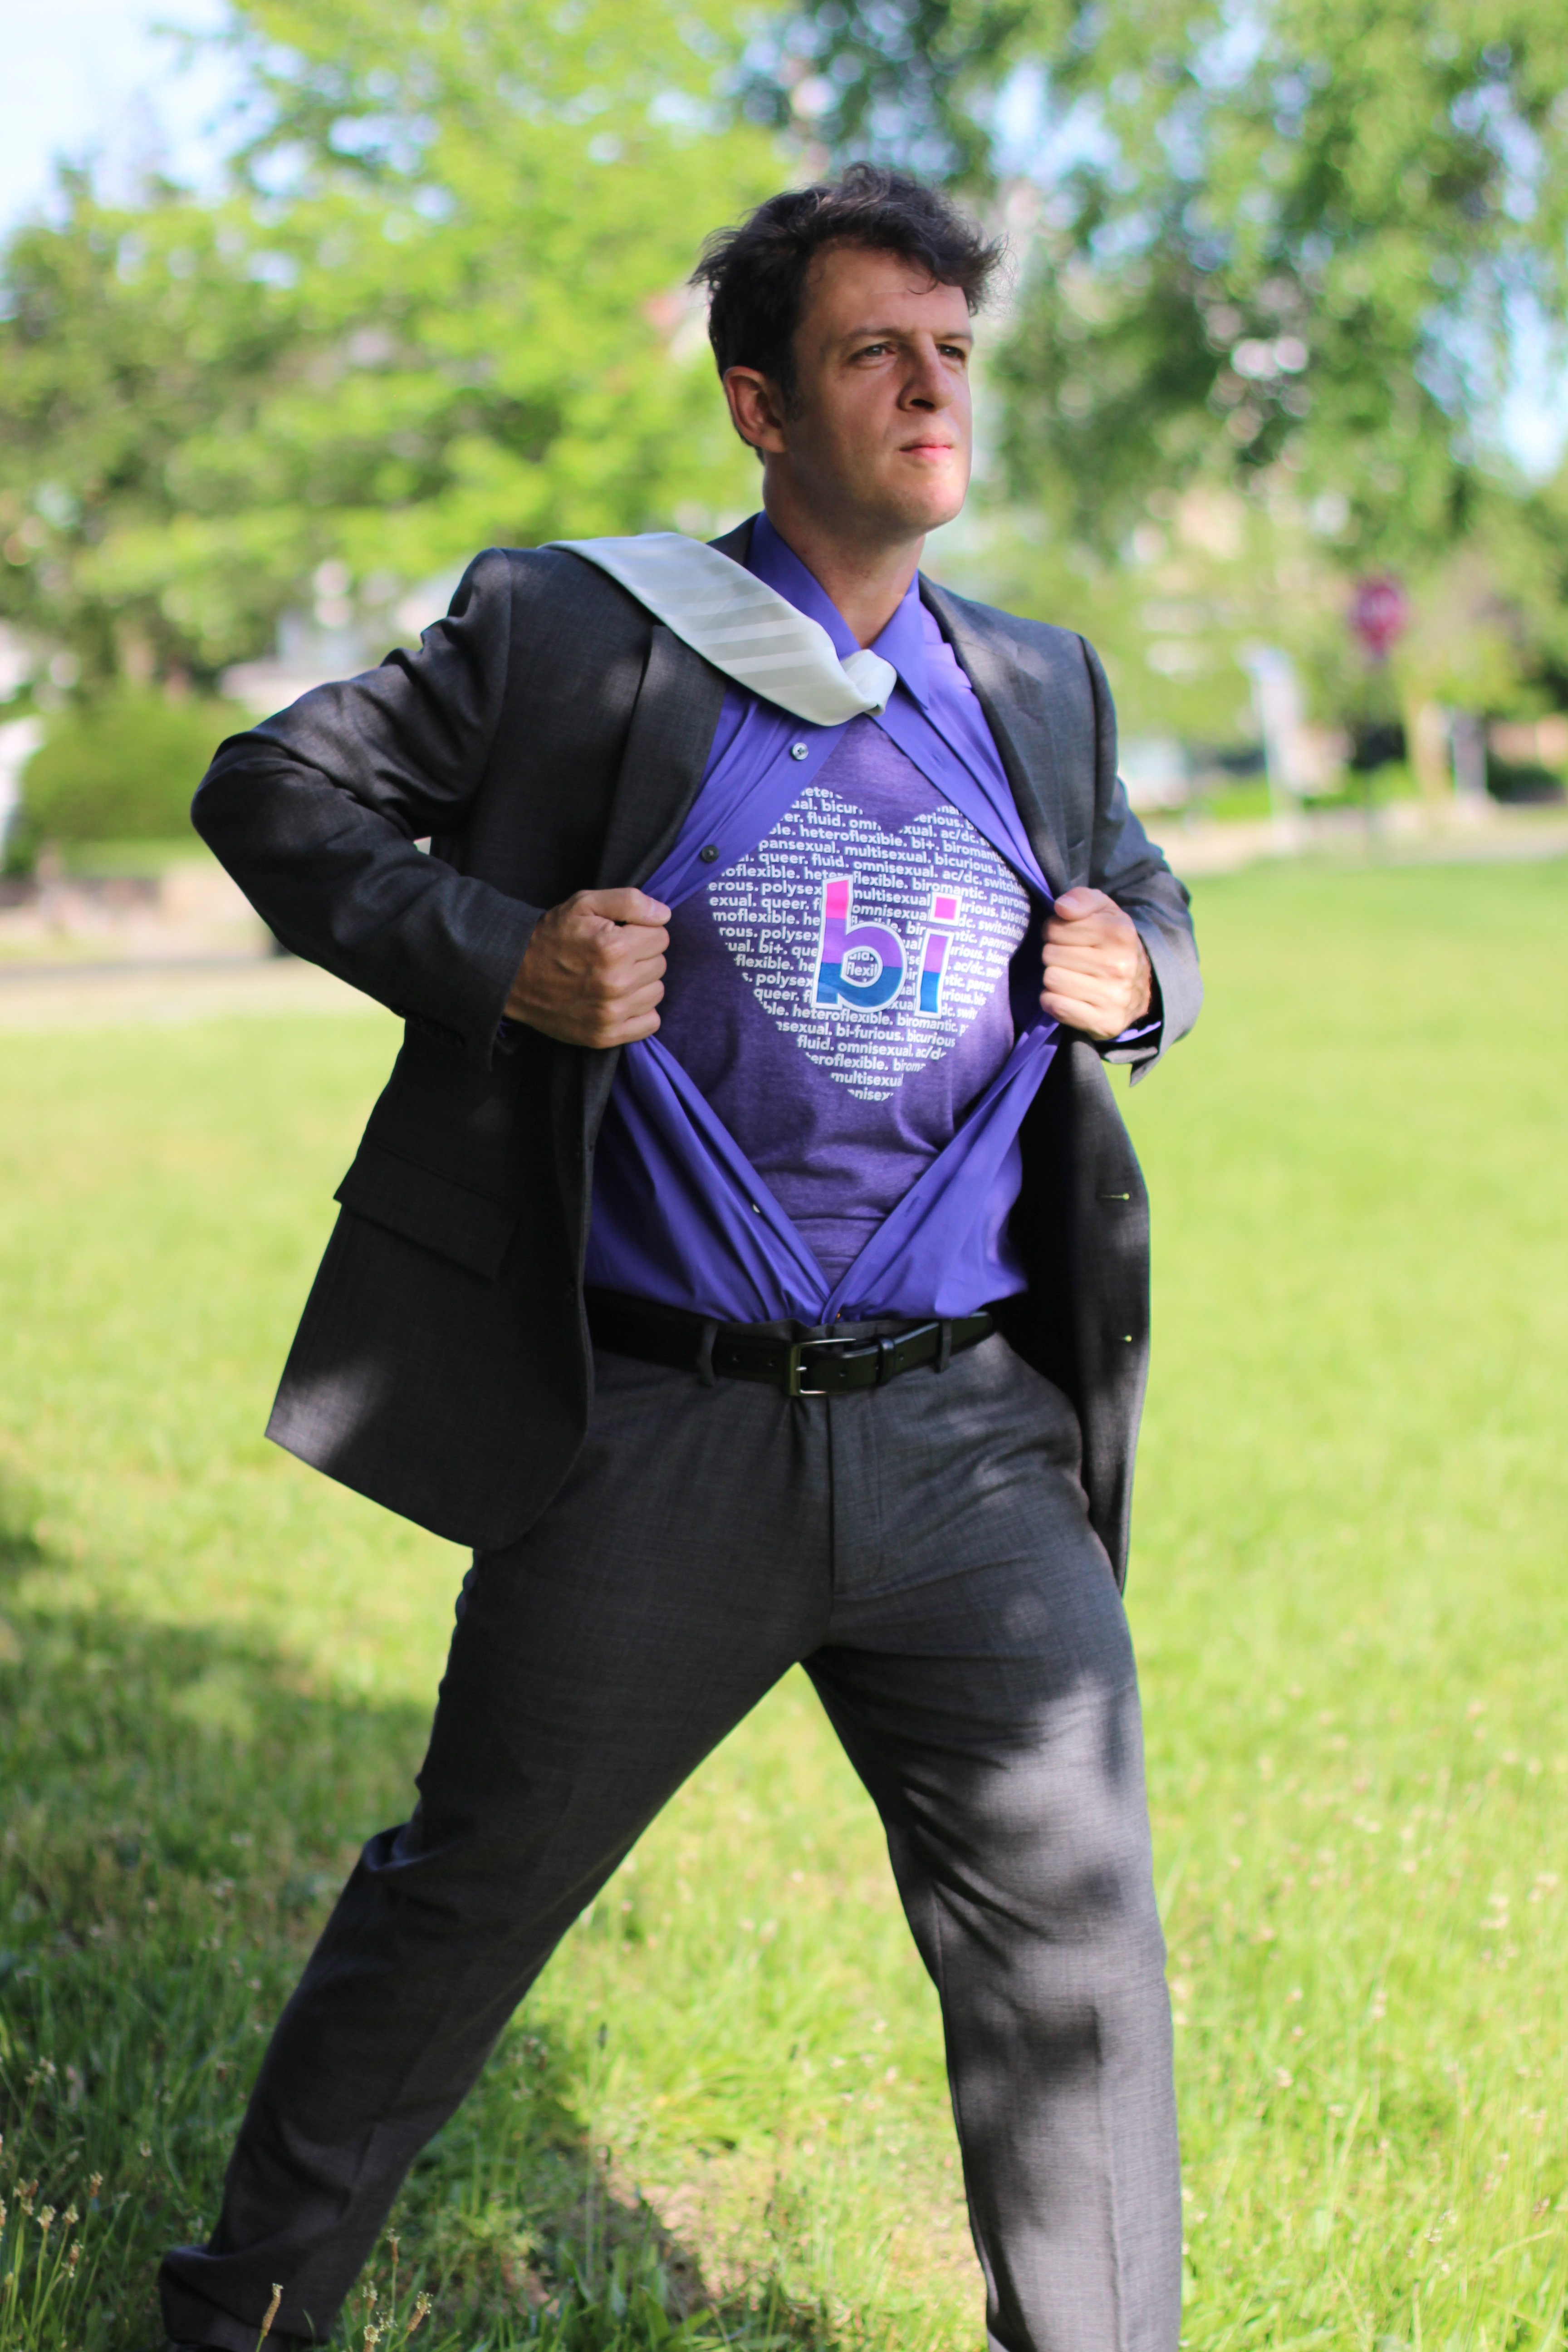 Man in suit holds jacket open to reveal bi+ heart shirt